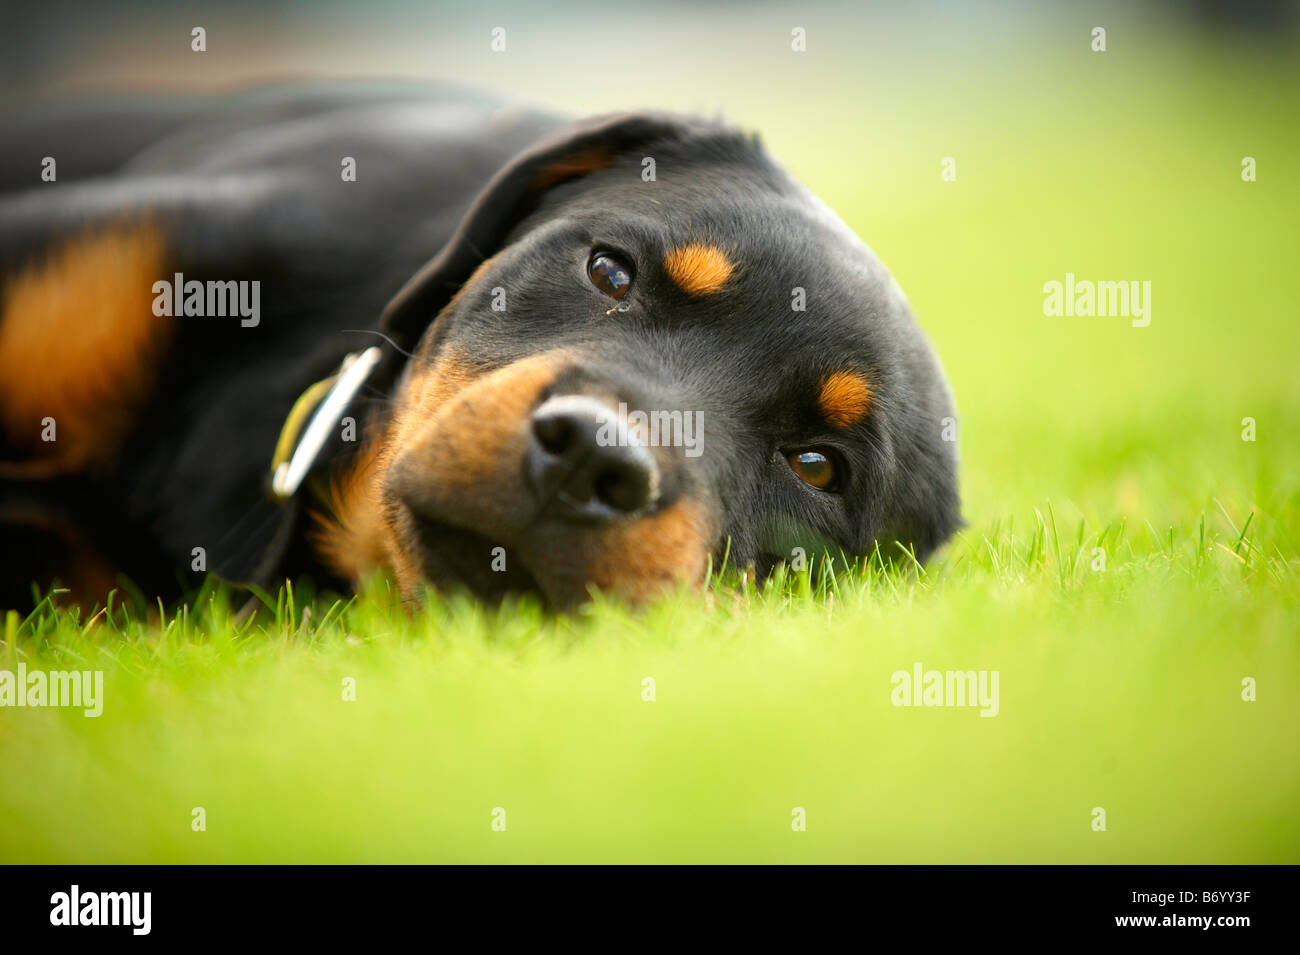 dog on grass - Stock Image